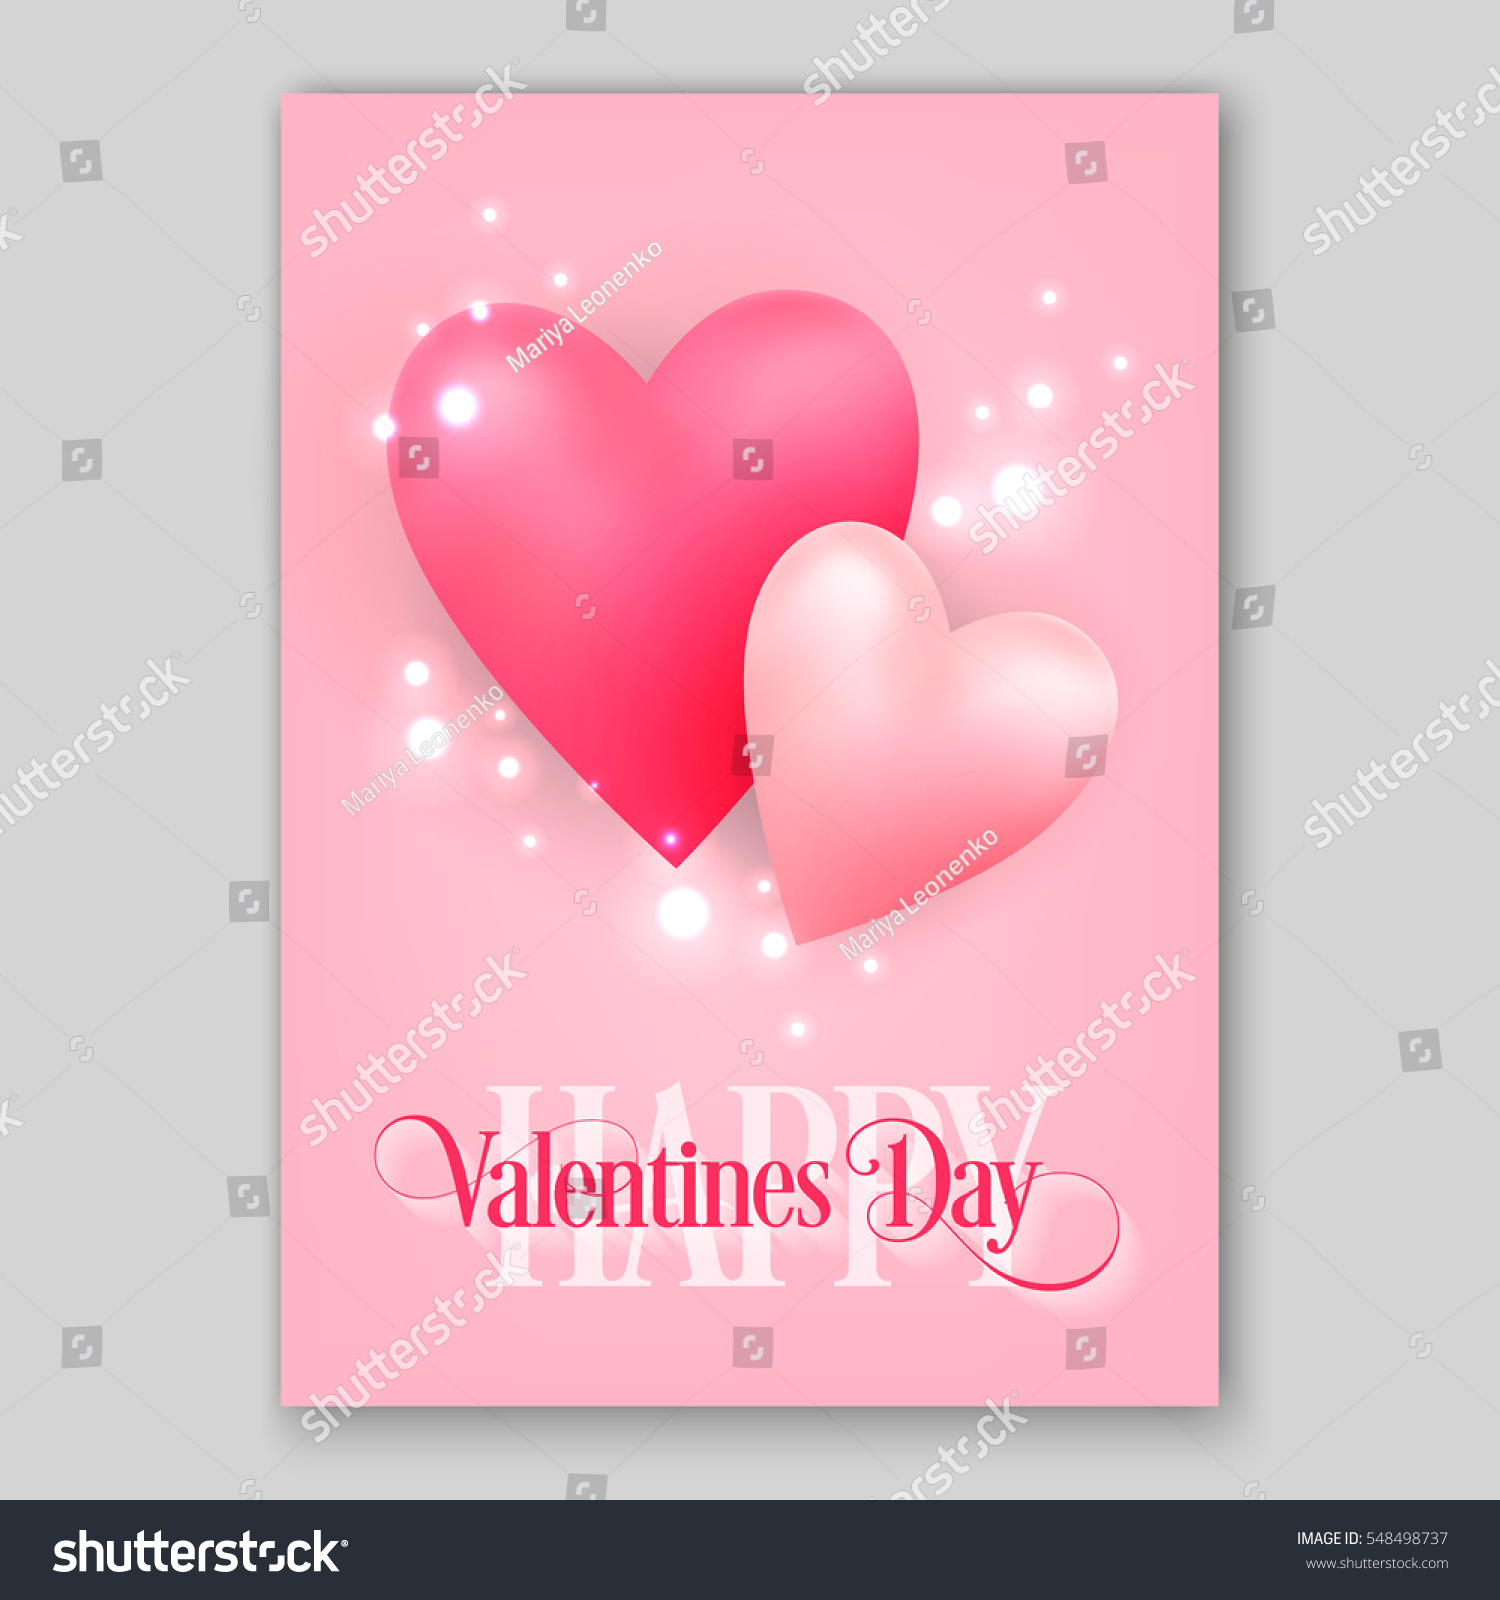 Happy Valentines Day Party Invitation Card Stock Vector 548498737 ...